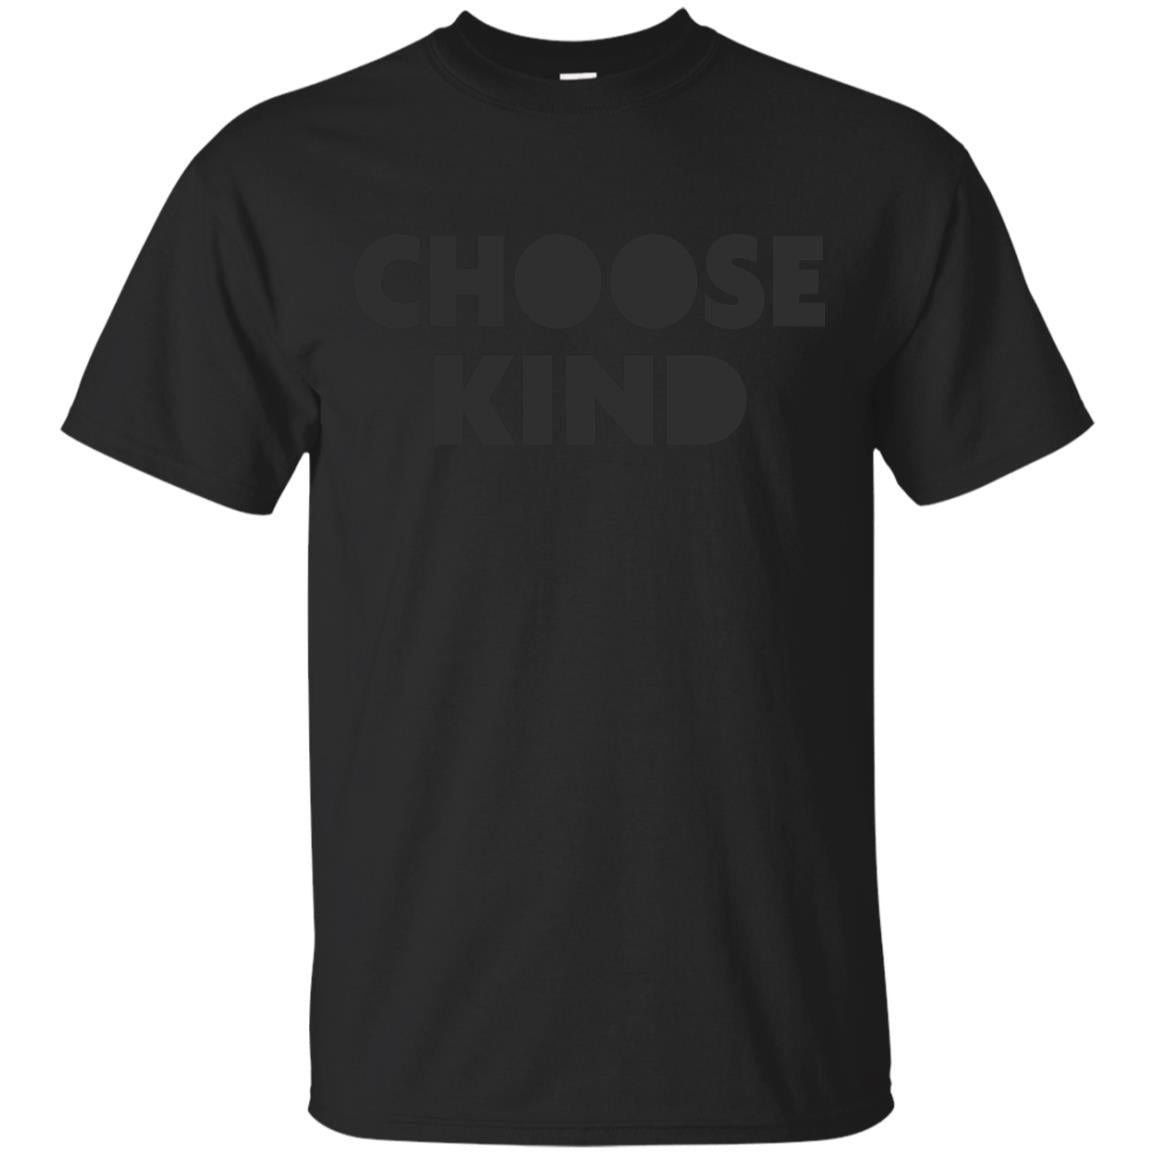 Choose Kind TShirt   Anti Bullying Shirt